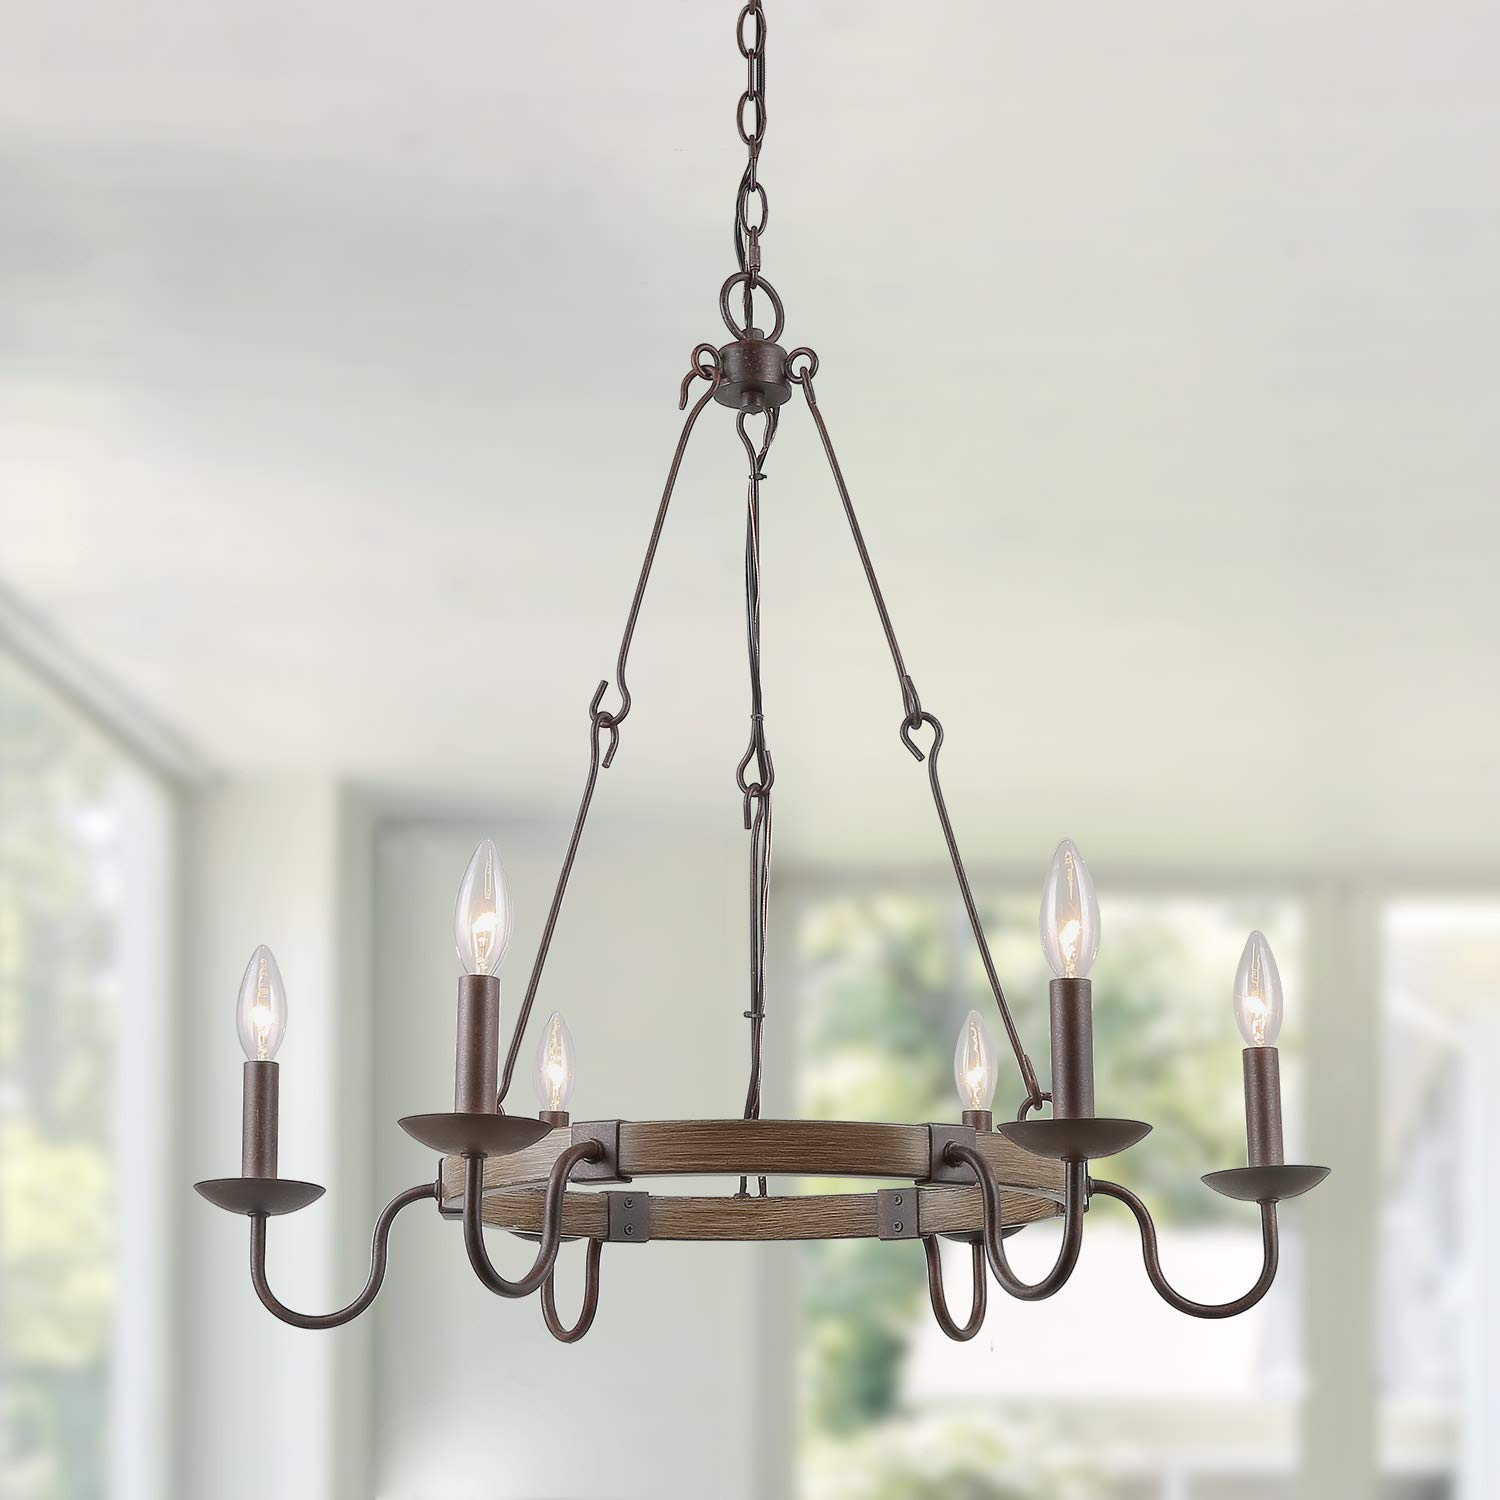 LOG BARN Rustic French Country Chandelier, 6 Lights Wagon Wheel Hanging Island Lighting for Kitchen in Rusty Metal & Faux Wood Finish, 28'' Medium Farmhouse Round Pendant Light Fixture, A03510